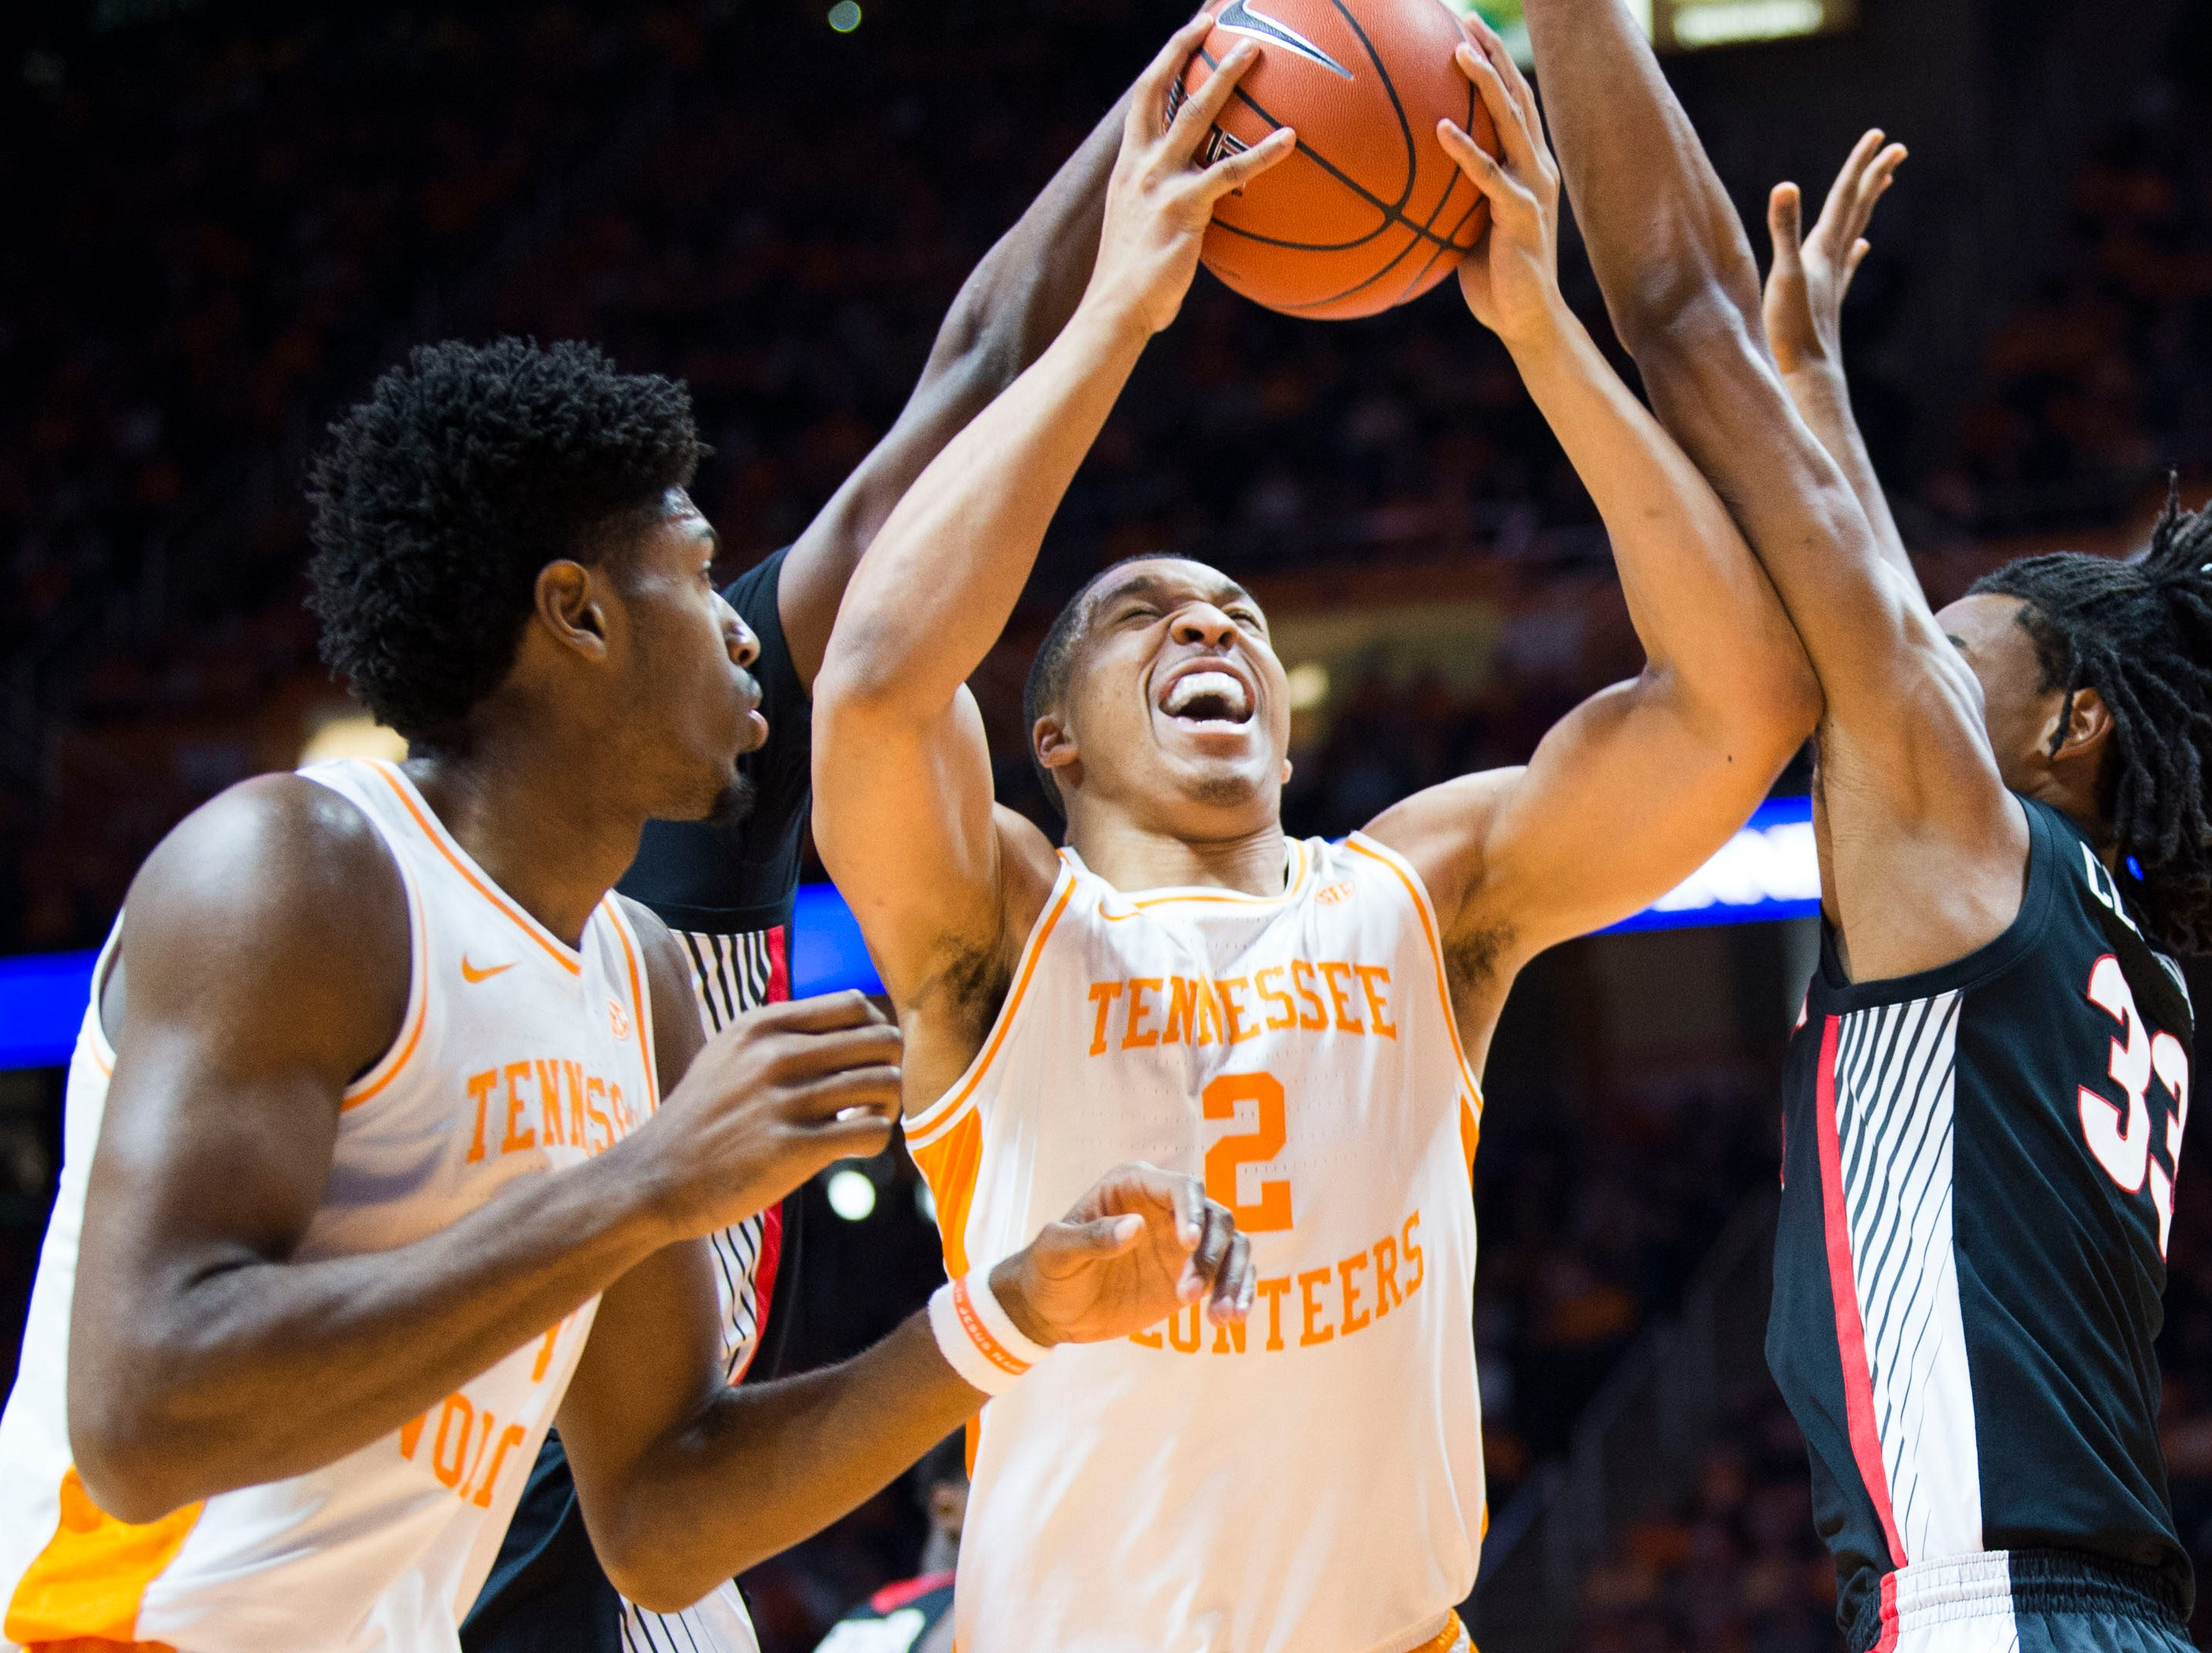 Tennessee's Grant Williams (2) takes a shot during a college basketball game between Tennessee and Georgia at Thompson-Boling Arena Saturday, Jan. 5, 2019.